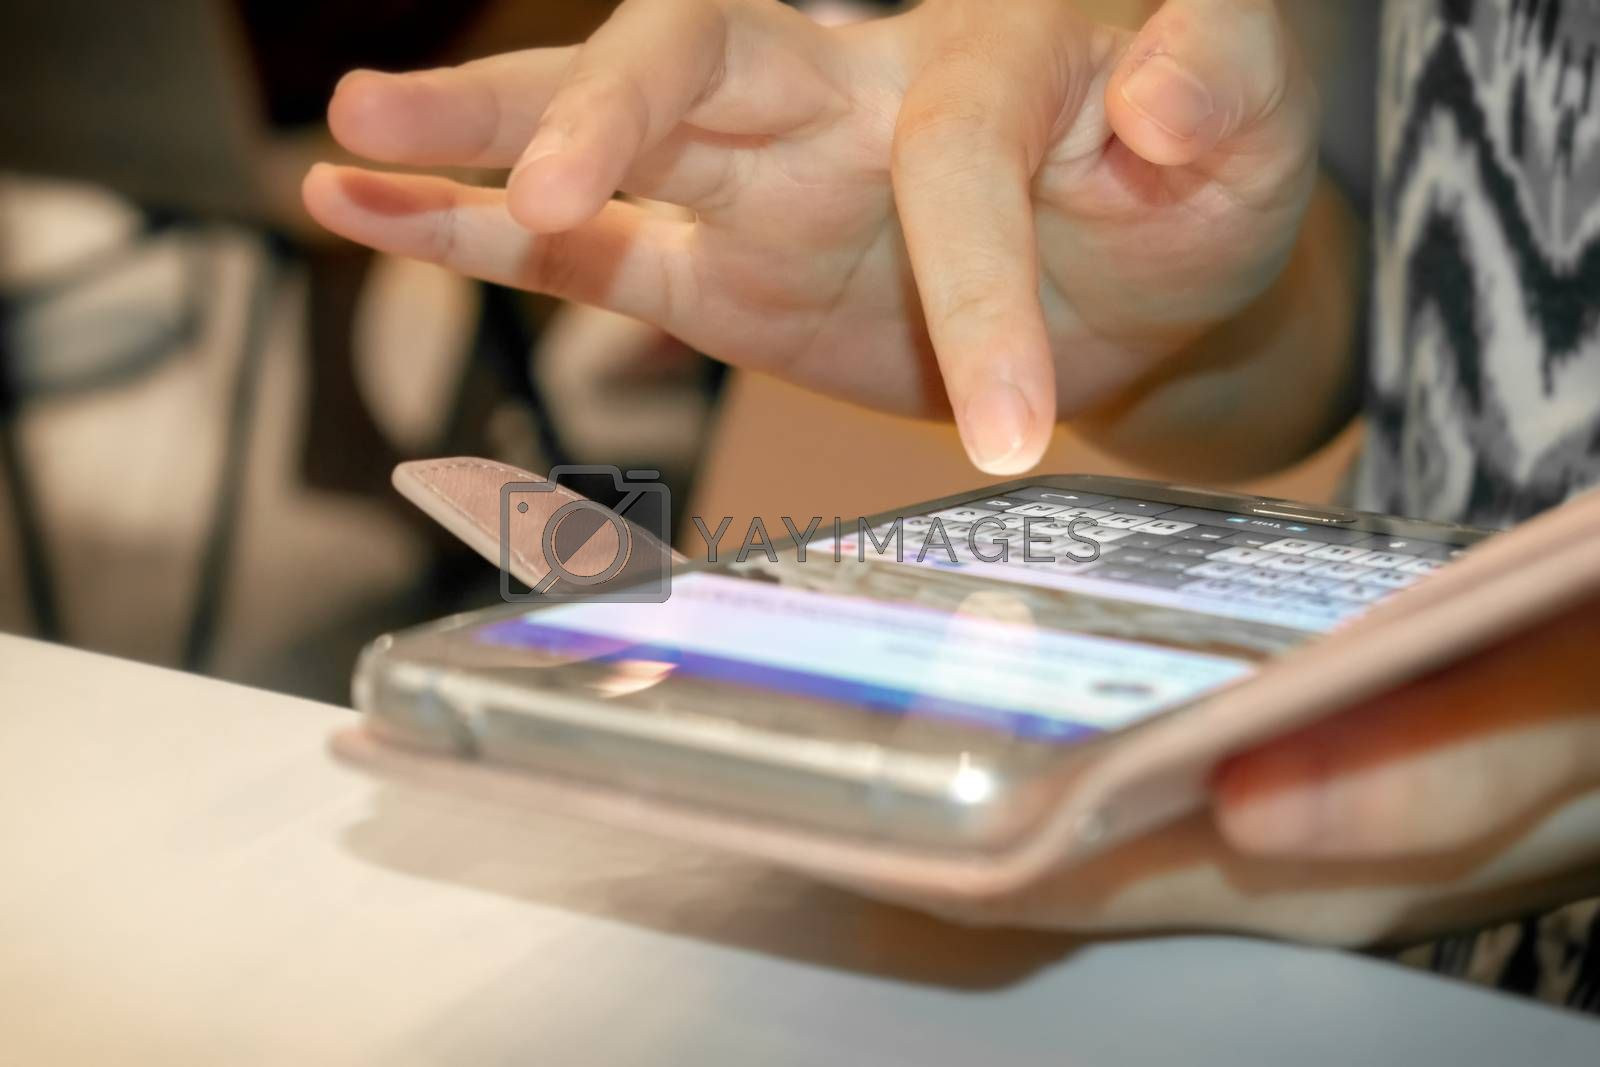 Finger Typing with the Onscreen Keyboard on a Smartphone